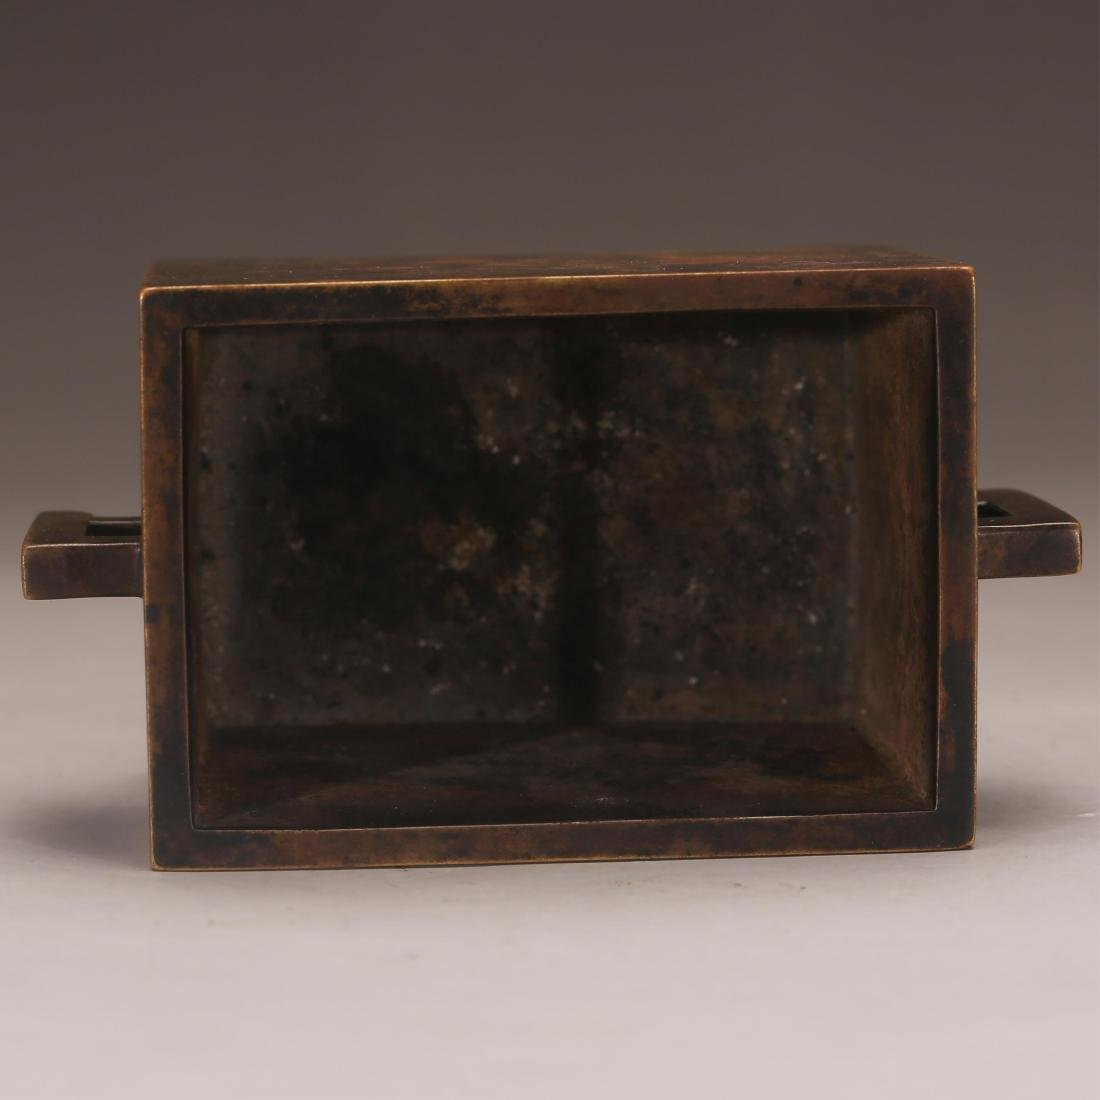 CHINESE BRONZE CENSER, QING OR EARLIER - 3